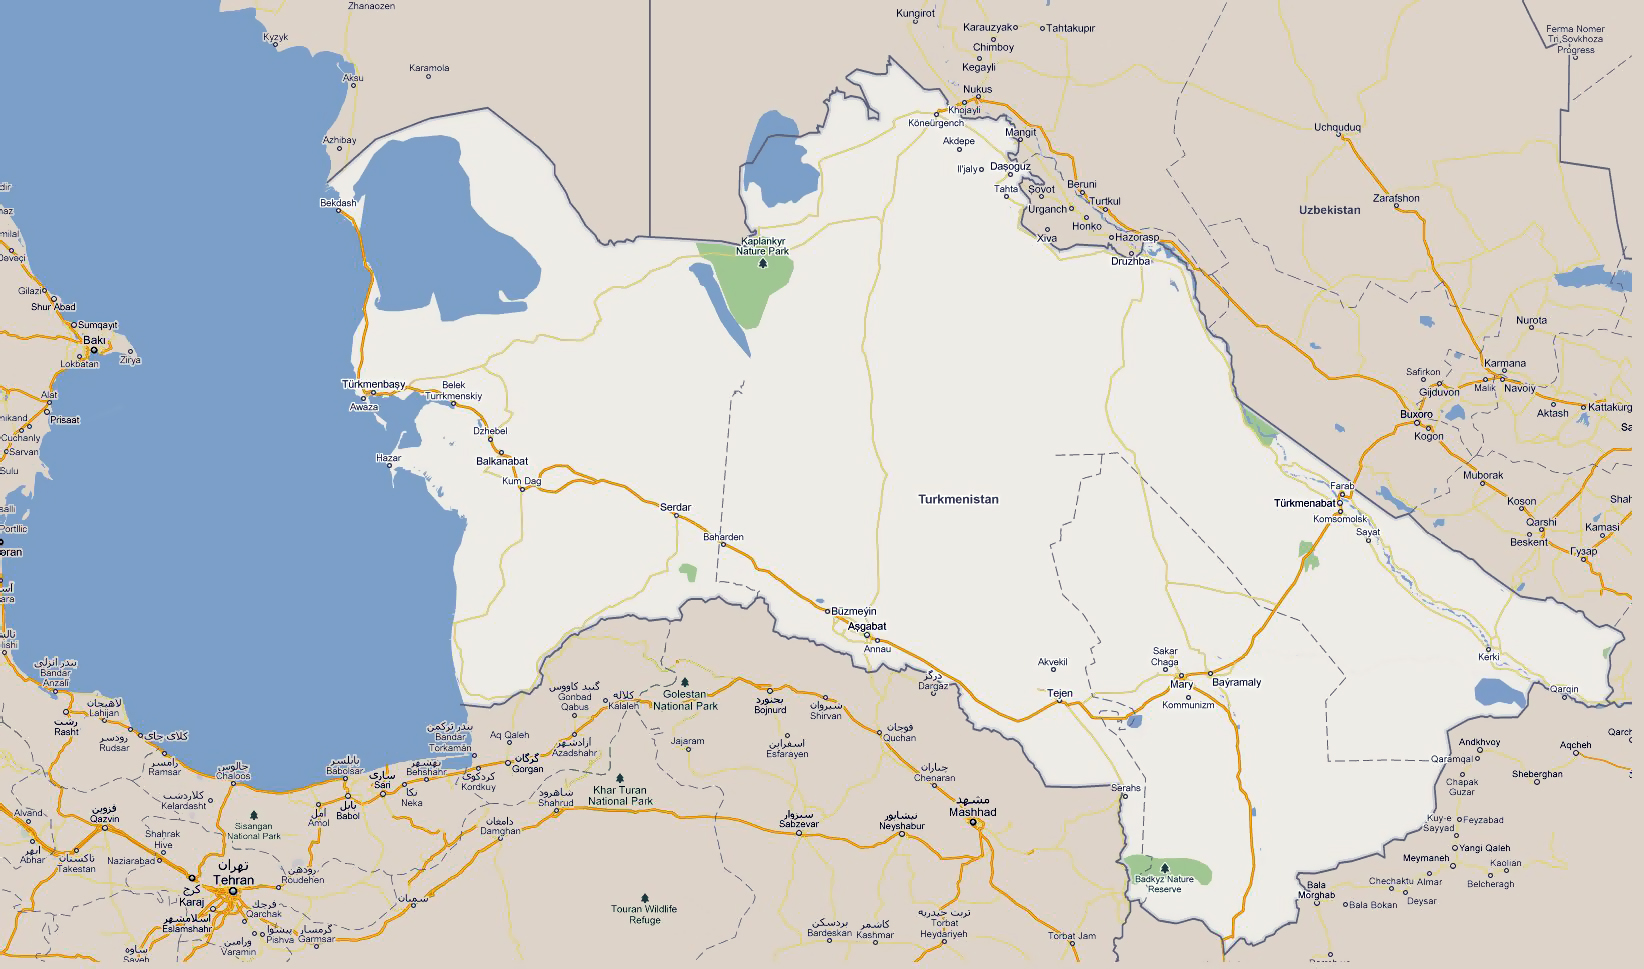 Large Road Map Of Turkmenistan With National Parks And Cities - Turkmenistan map